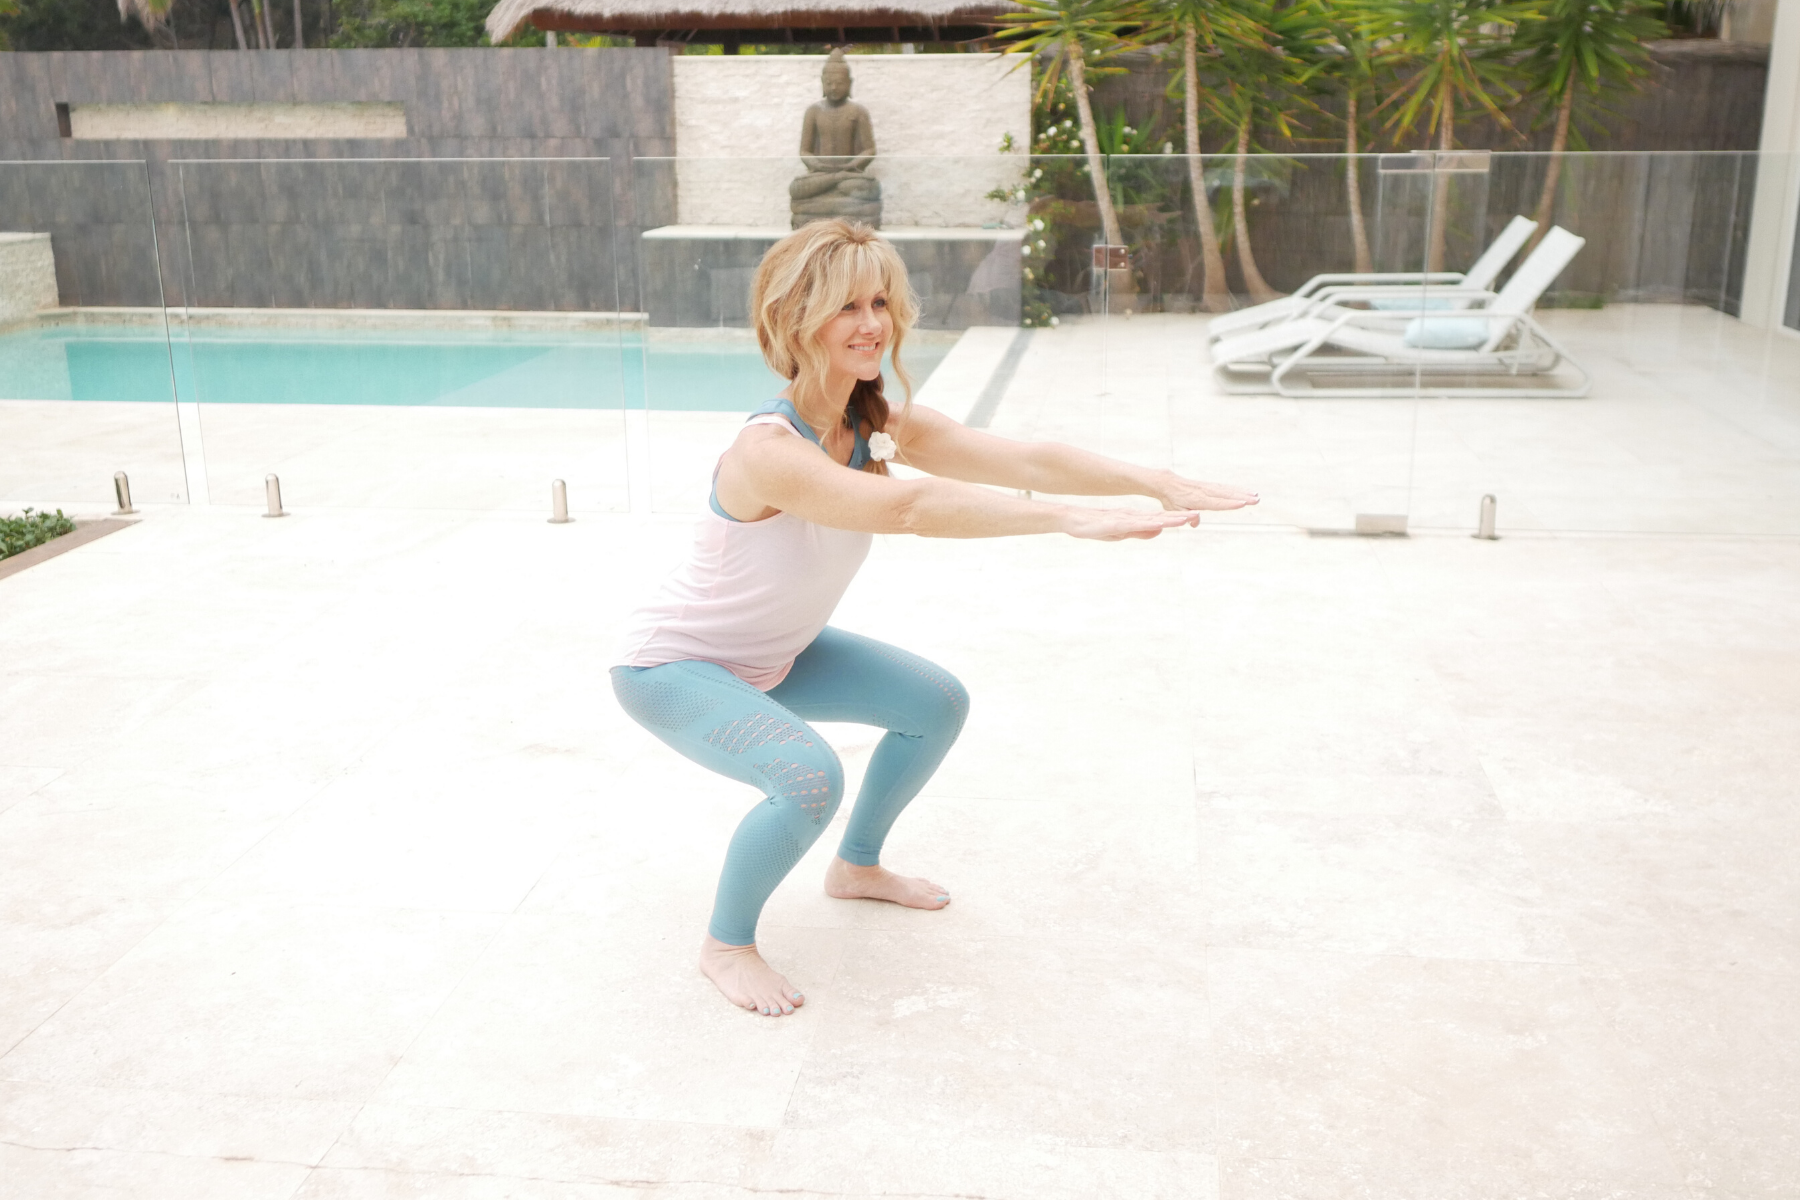 How To Squat Exercise For Women Over 50 Fabulous 50s